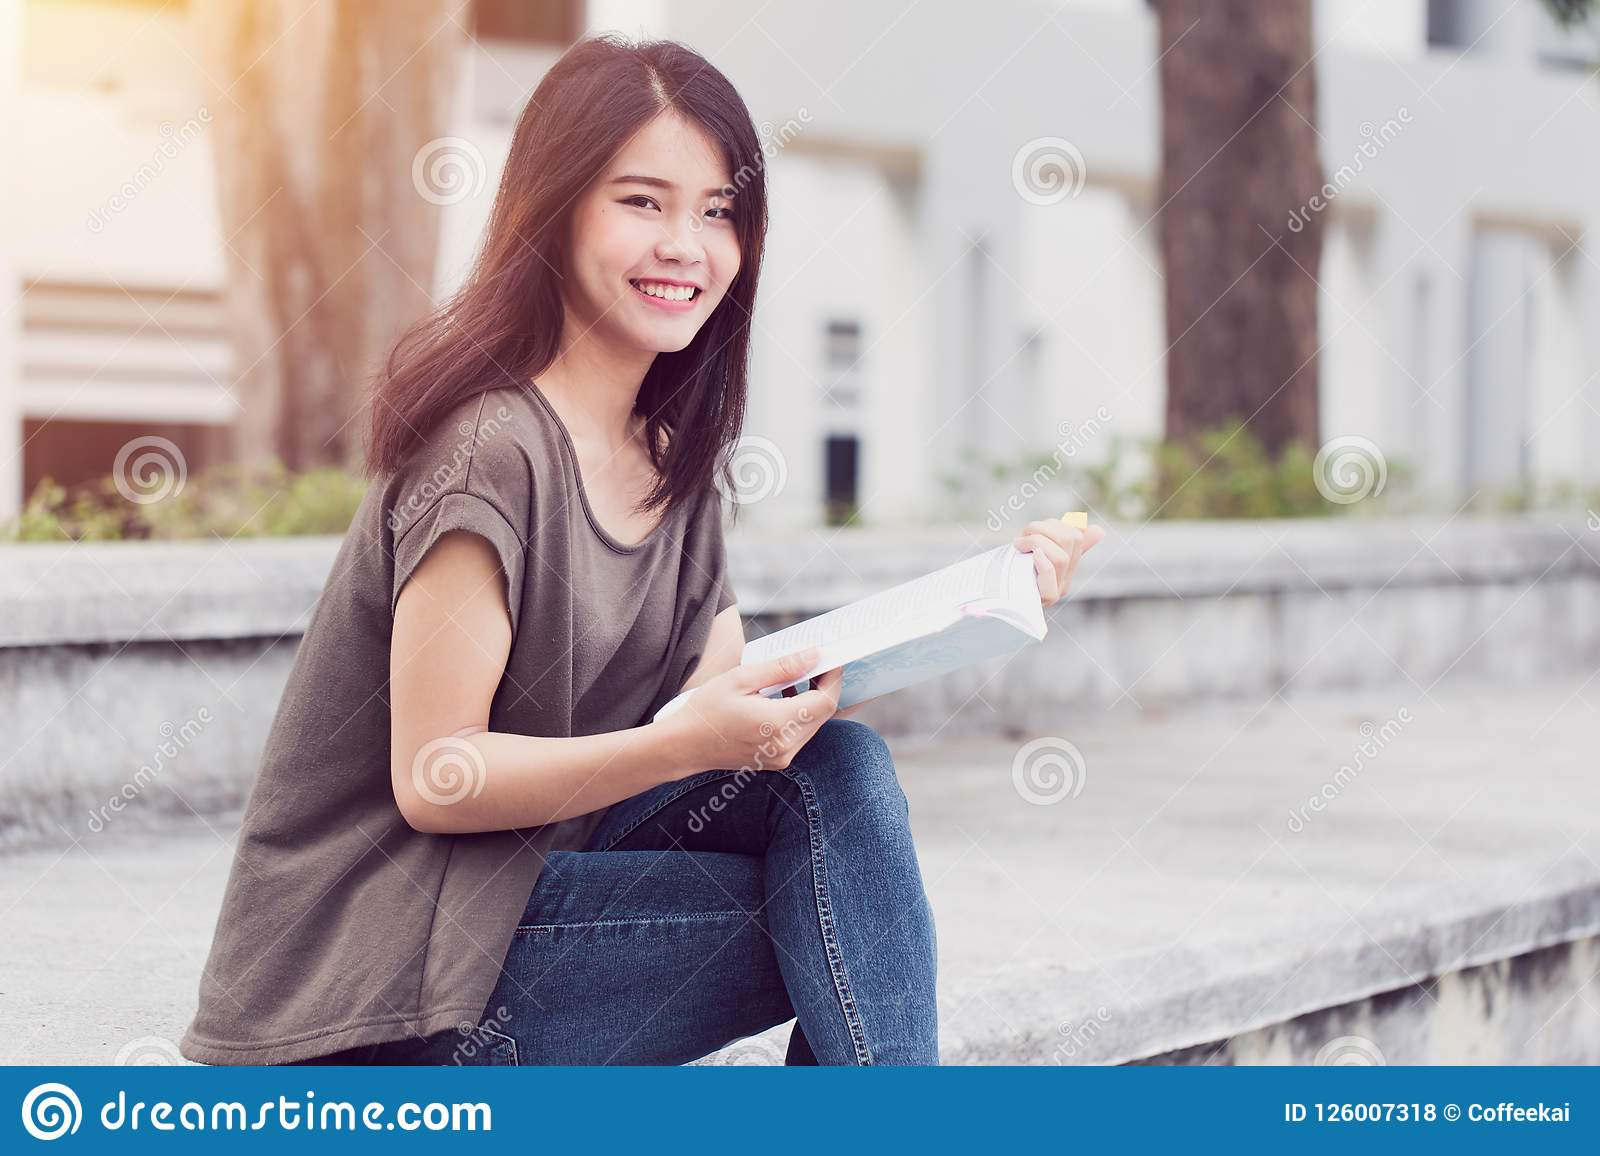 Asian Teen Woman Reading Book Happiness And Smile Enjoy Education In University